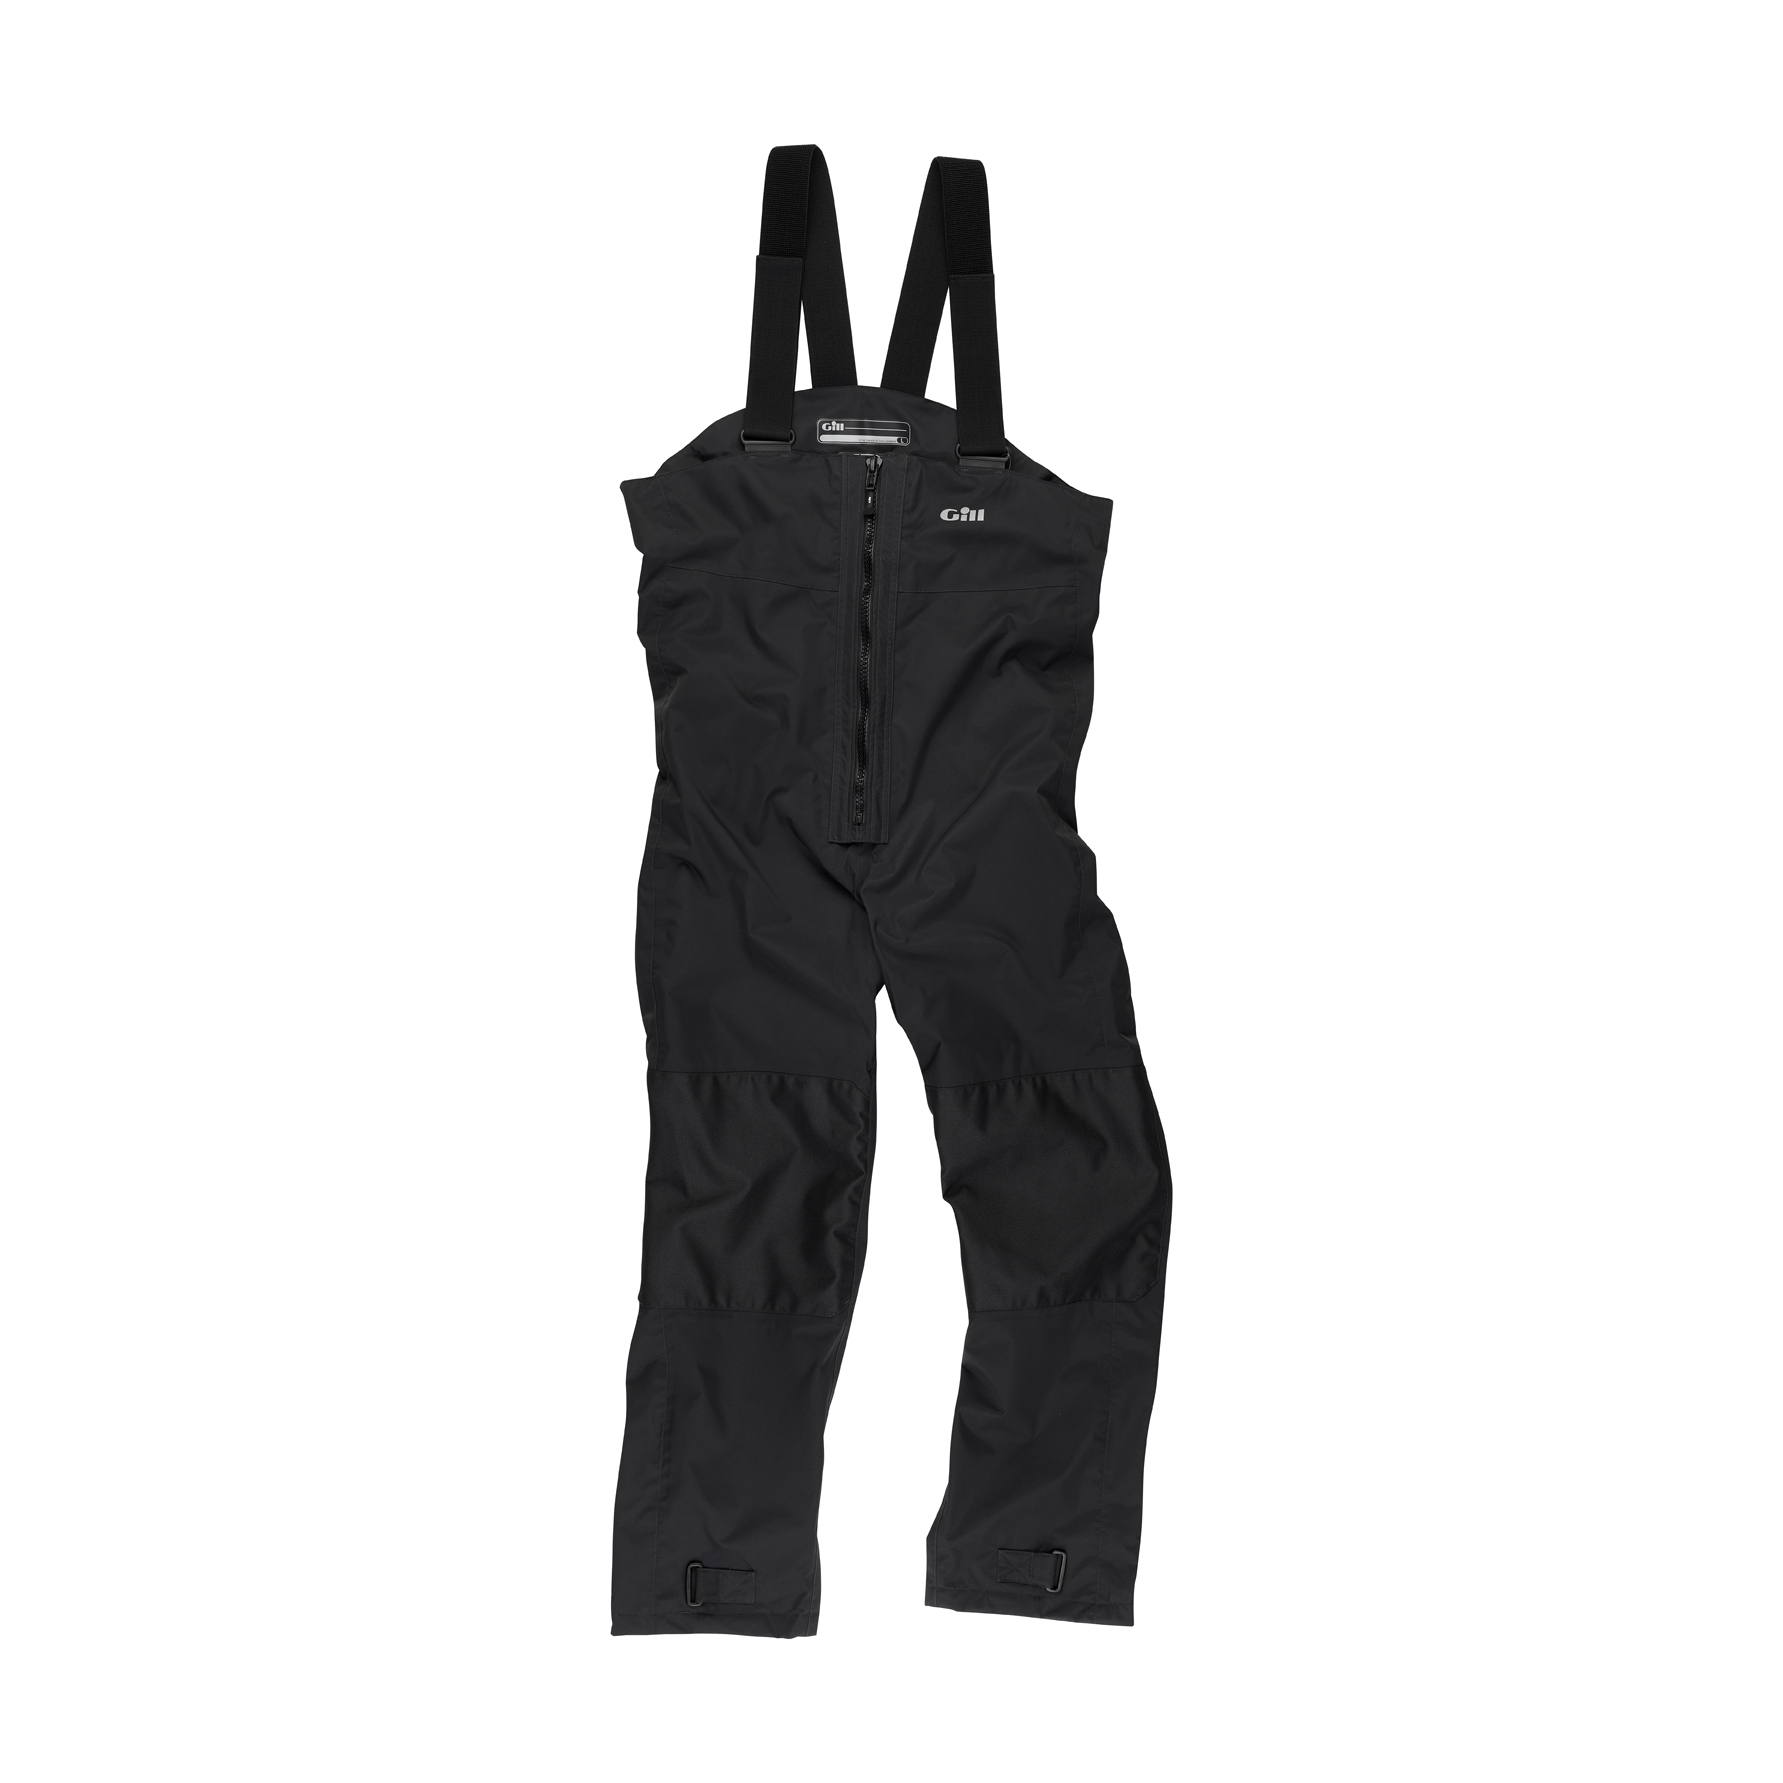 GILL COAST TROUSER (IN12T)